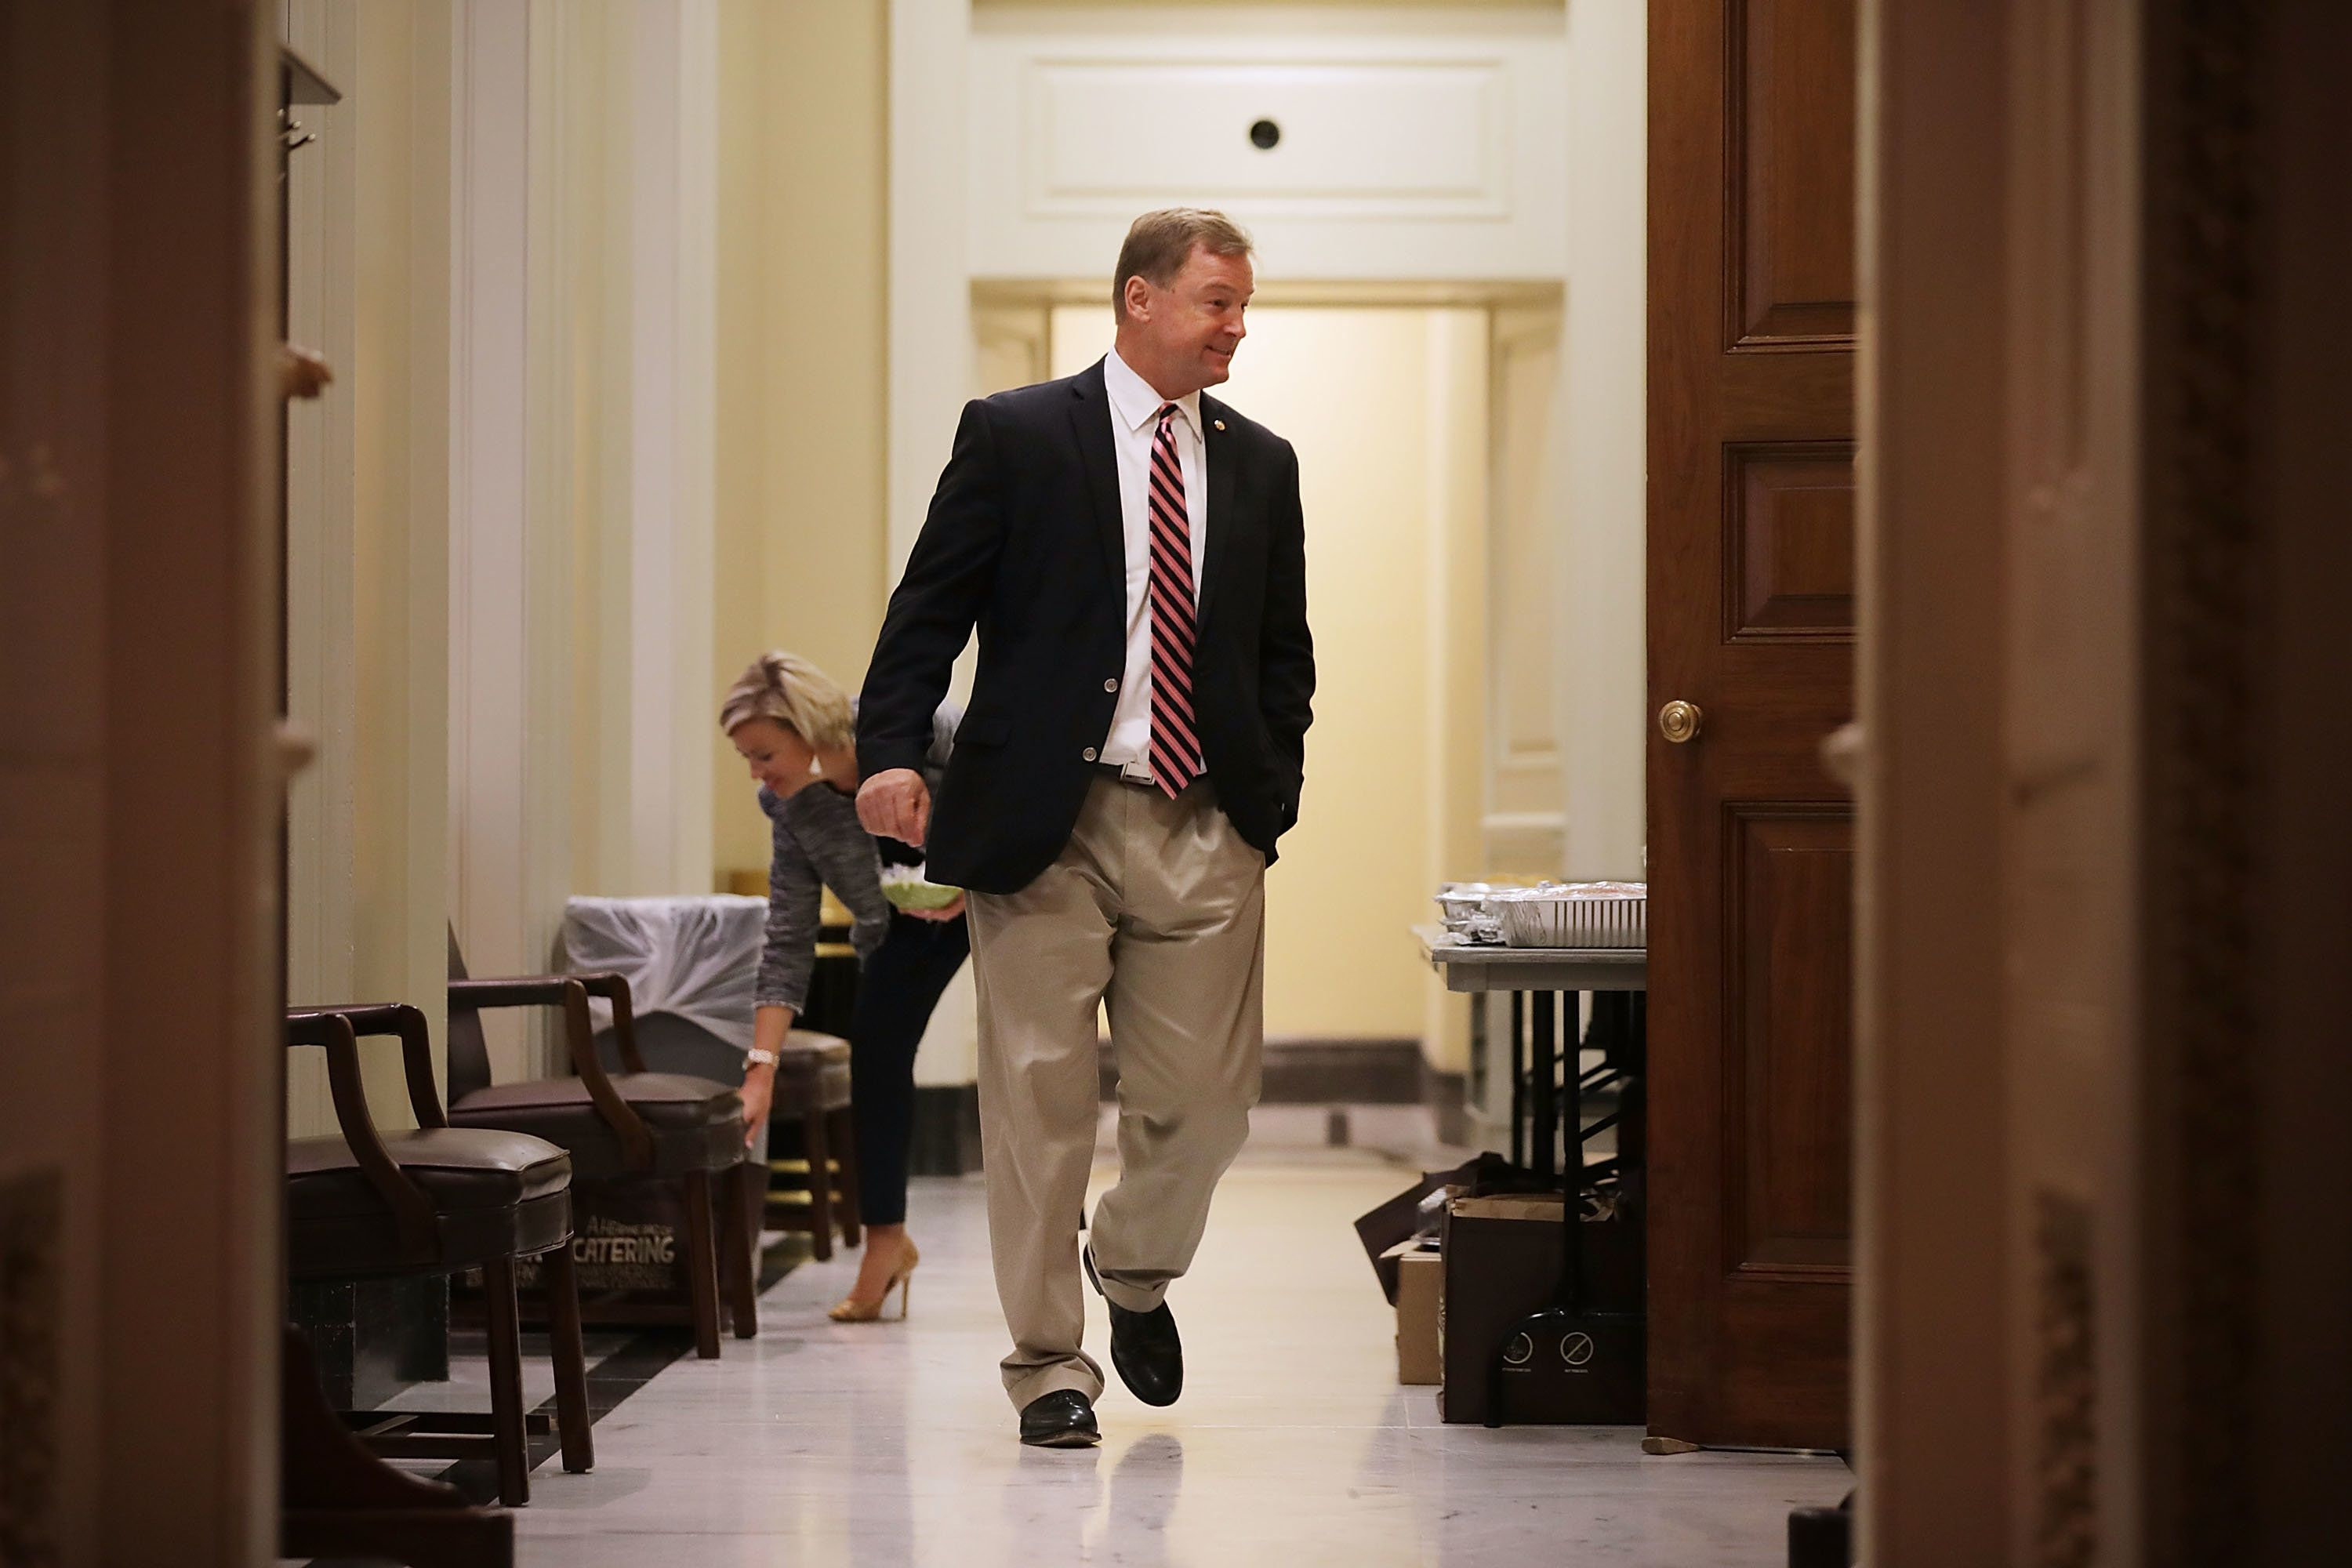 WASHINGTON, DC - JULY 27:  Sen. Dean Heller (R-NV) moves through the halls between votes at the U.S. Capitol  July 27, 2017 in Washington, DC. Senate Republicans are working to pass a stripped-down, or 'Skinny Repeal,' version of health care reform that might do away with individual and employer mandates and tax on medical devices.  (Photo by Chip Somodevilla/Getty Images)